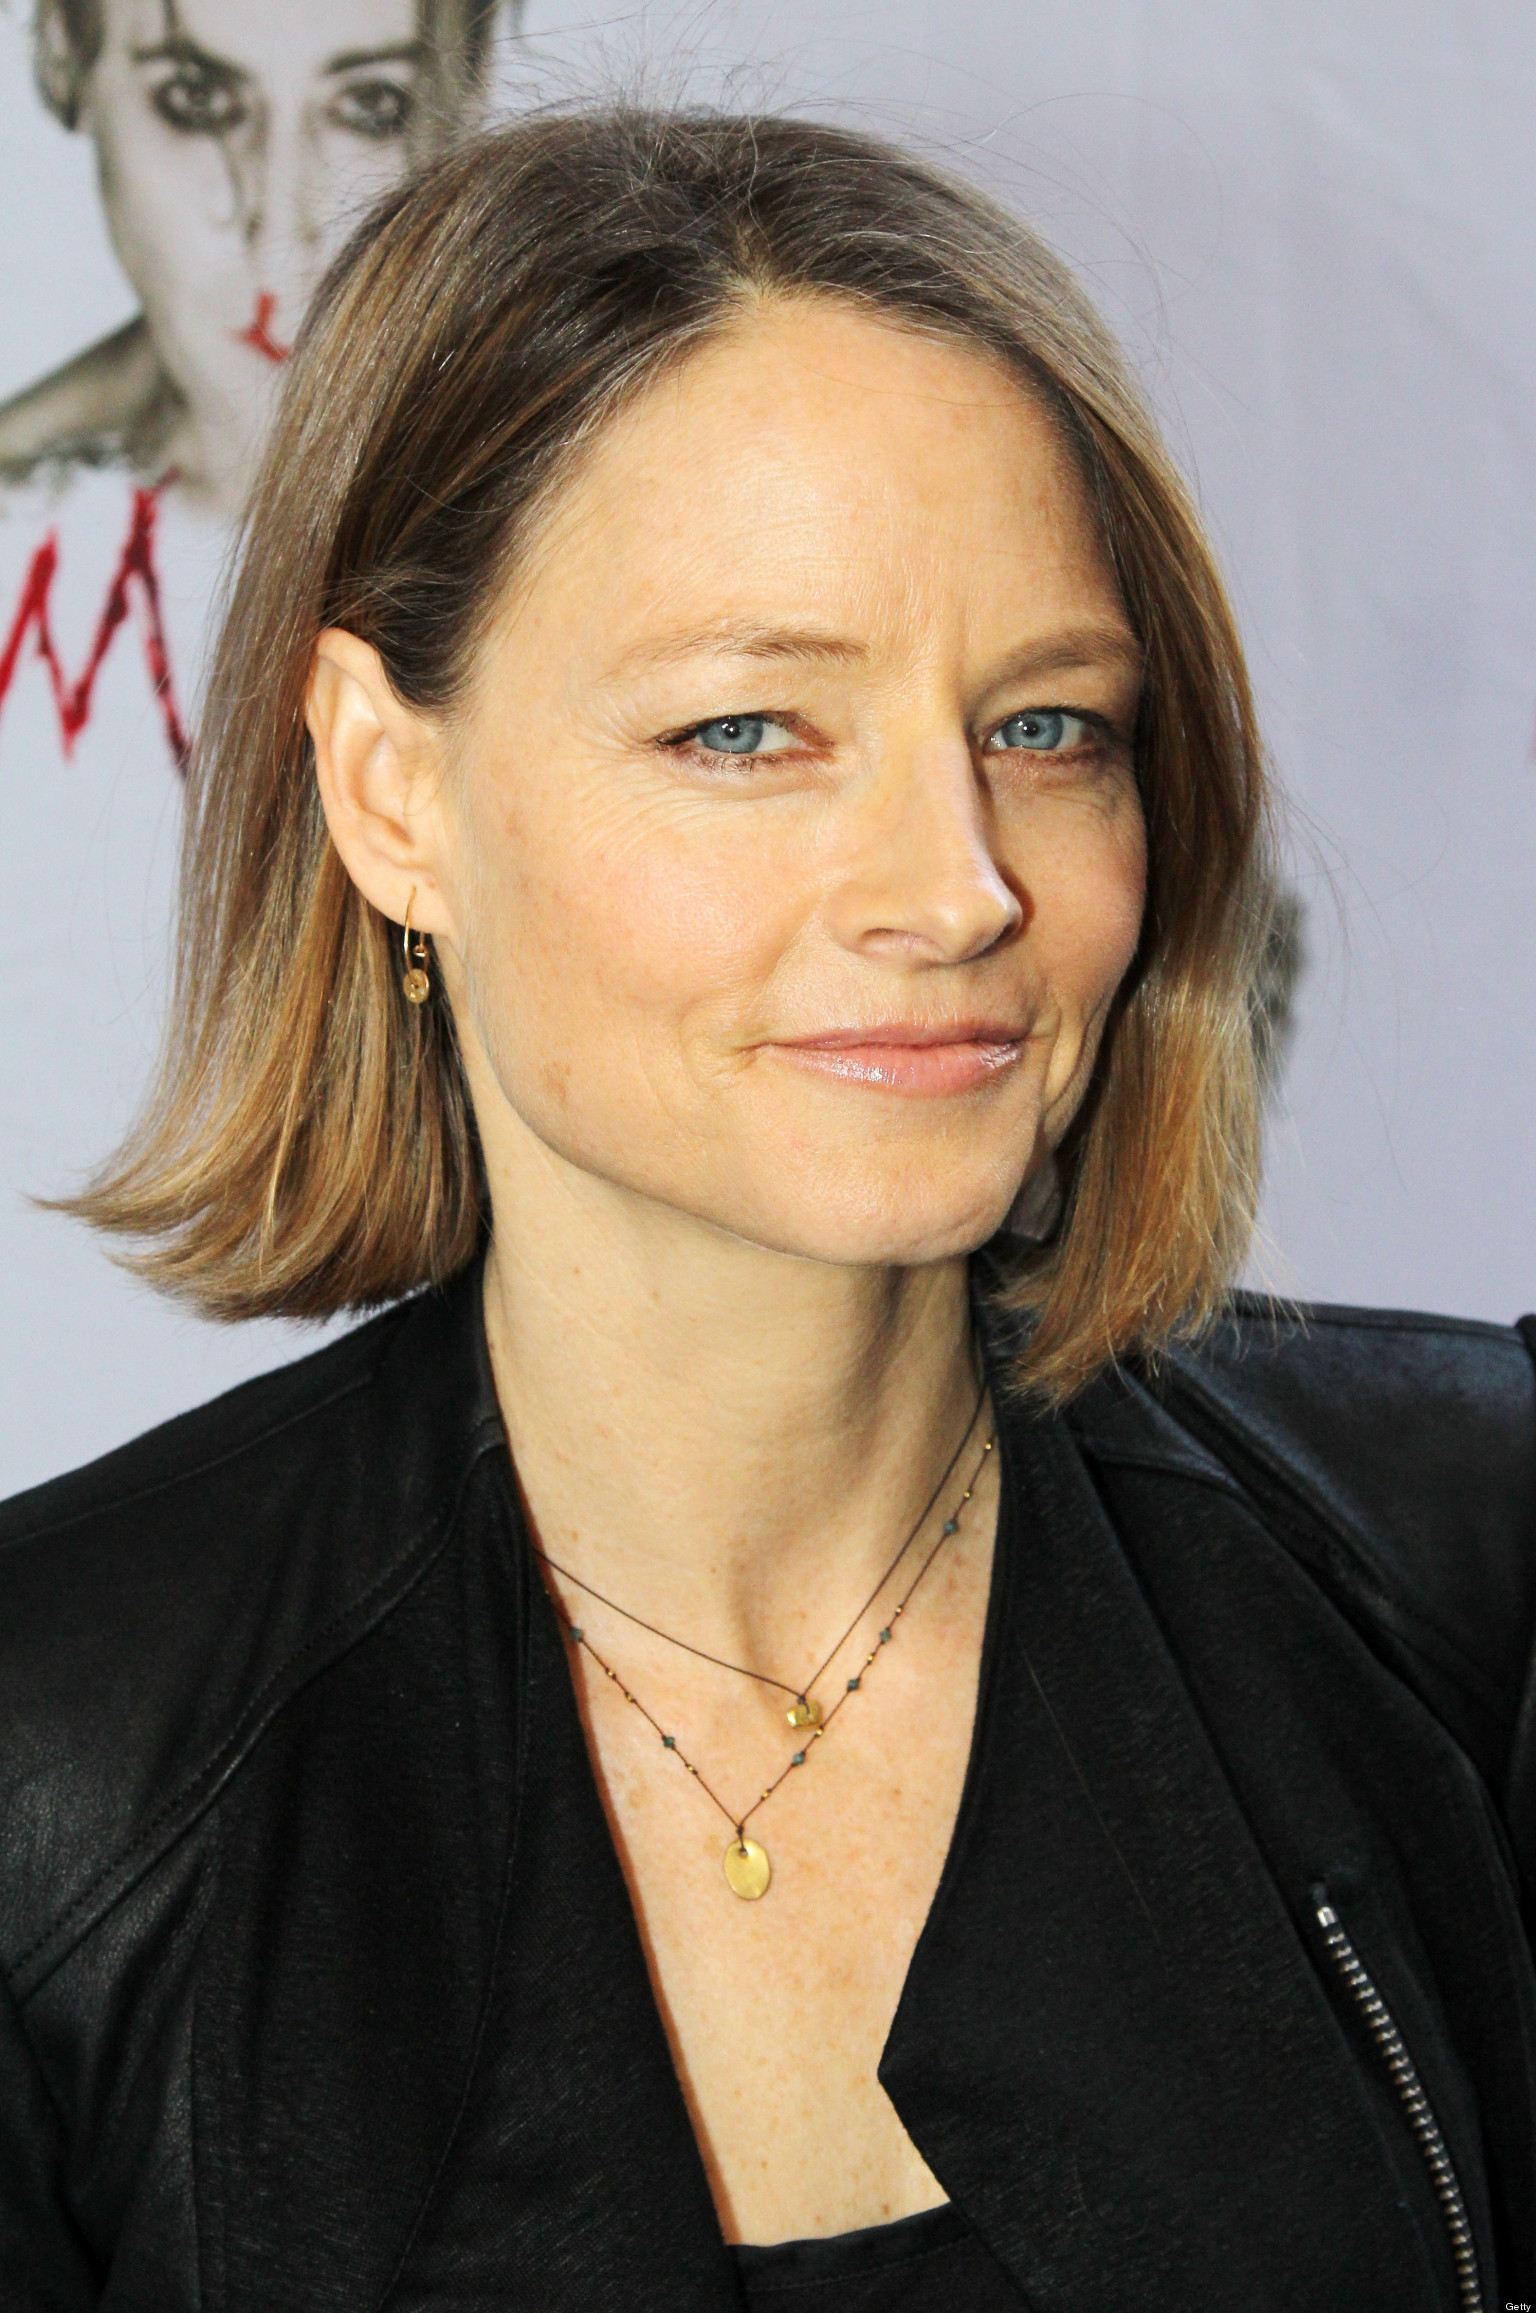 jodie foster alex hedisonjodie foster young, jodie foster 2016, jodie foster films, jodie foster wife, jodie foster filmi, jodie foster oscar, jodie foster movies, jodie foster 2017, jodie foster фильмы, jodie foster filmography, jodie foster 1976, jodie foster wiki, jodie foster wikipedia, jodie foster height, jodie foster interview, jodie foster imdb, jodie foster 1990, jodie foster alex hedison, jodie foster gif, jodie foster filmografia